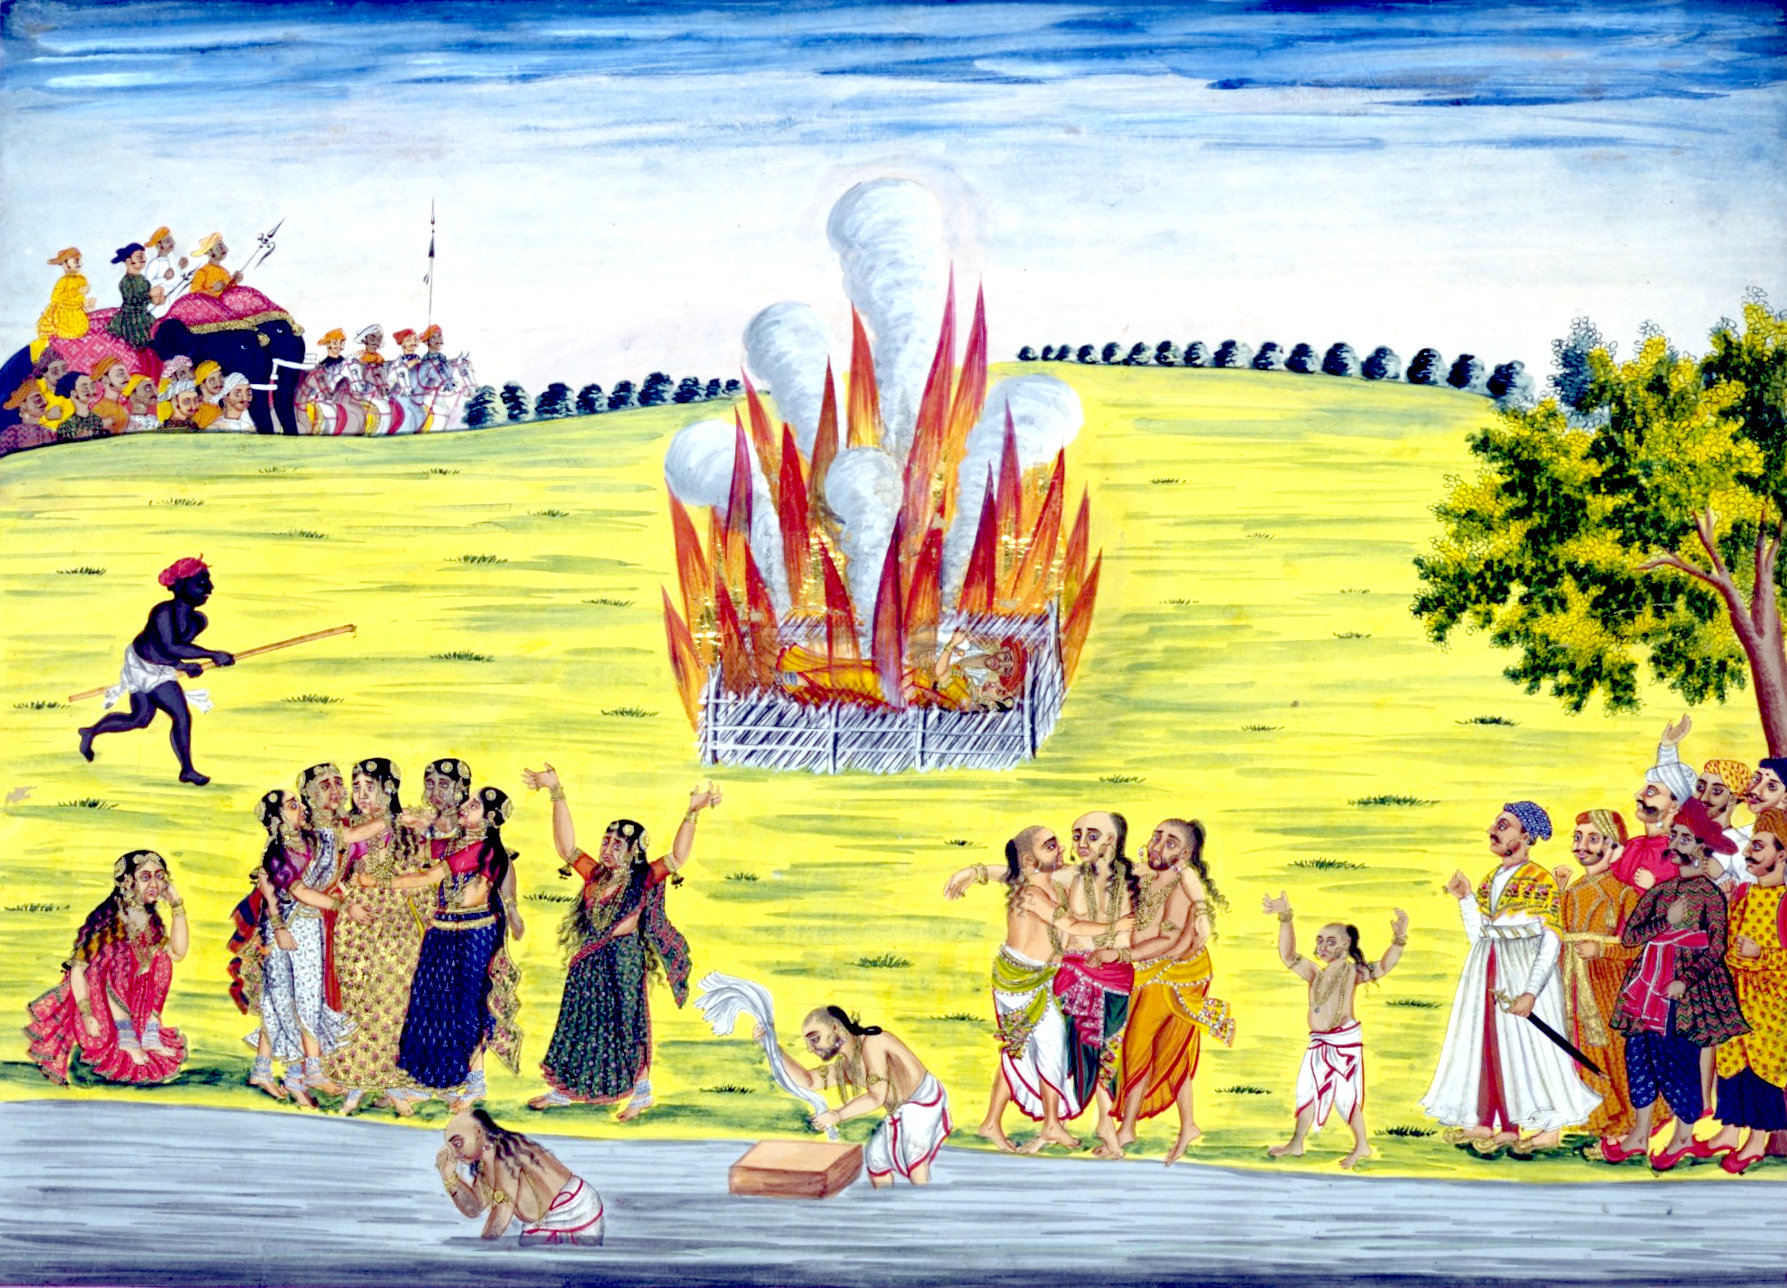 http://upload.wikimedia.org/wikipedia/commons/f/f9/Sati_ceremony.jpg